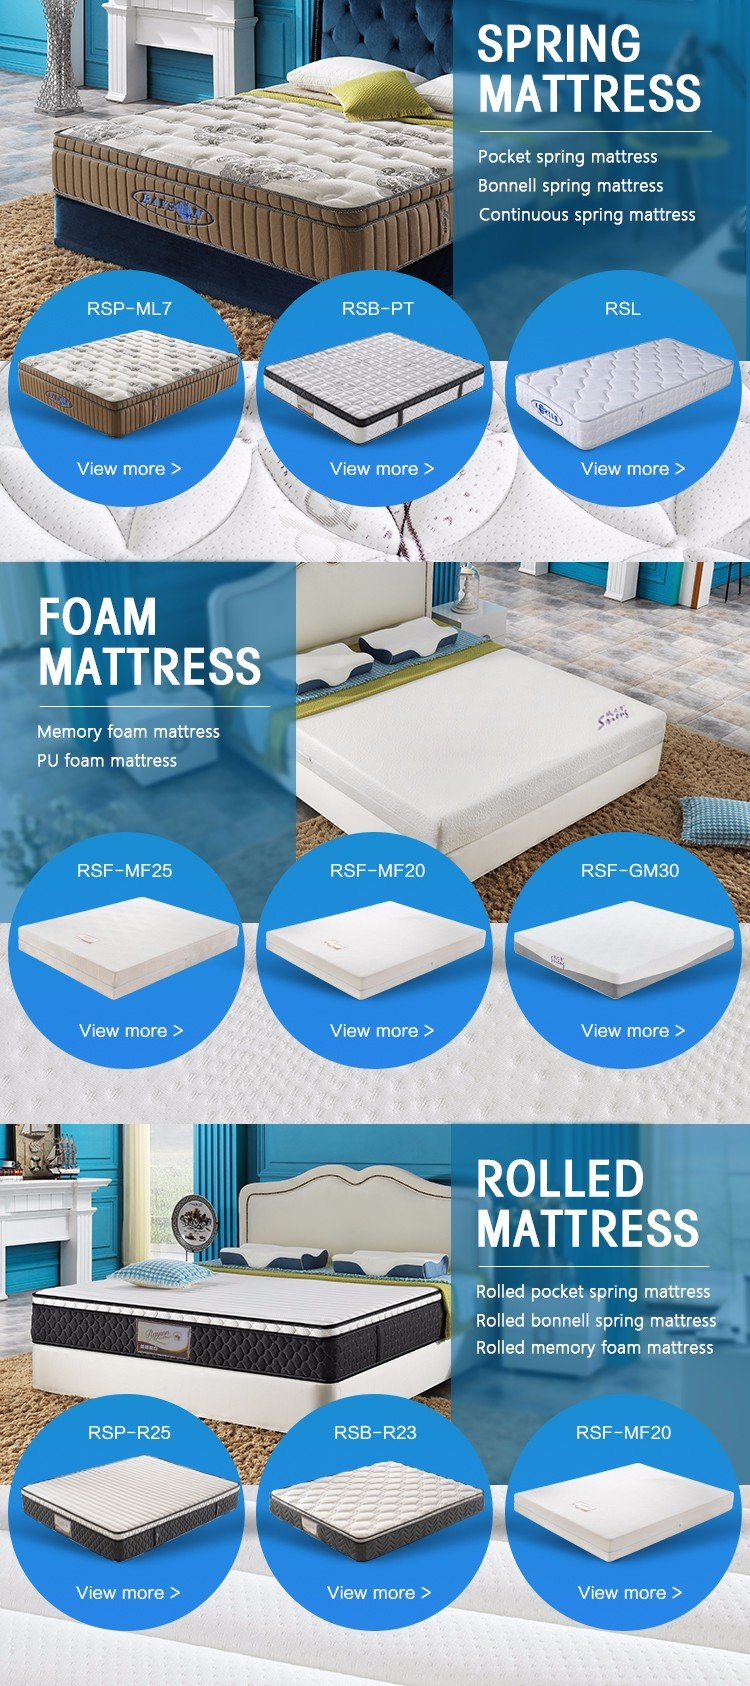 New mattress construction night Supply-7